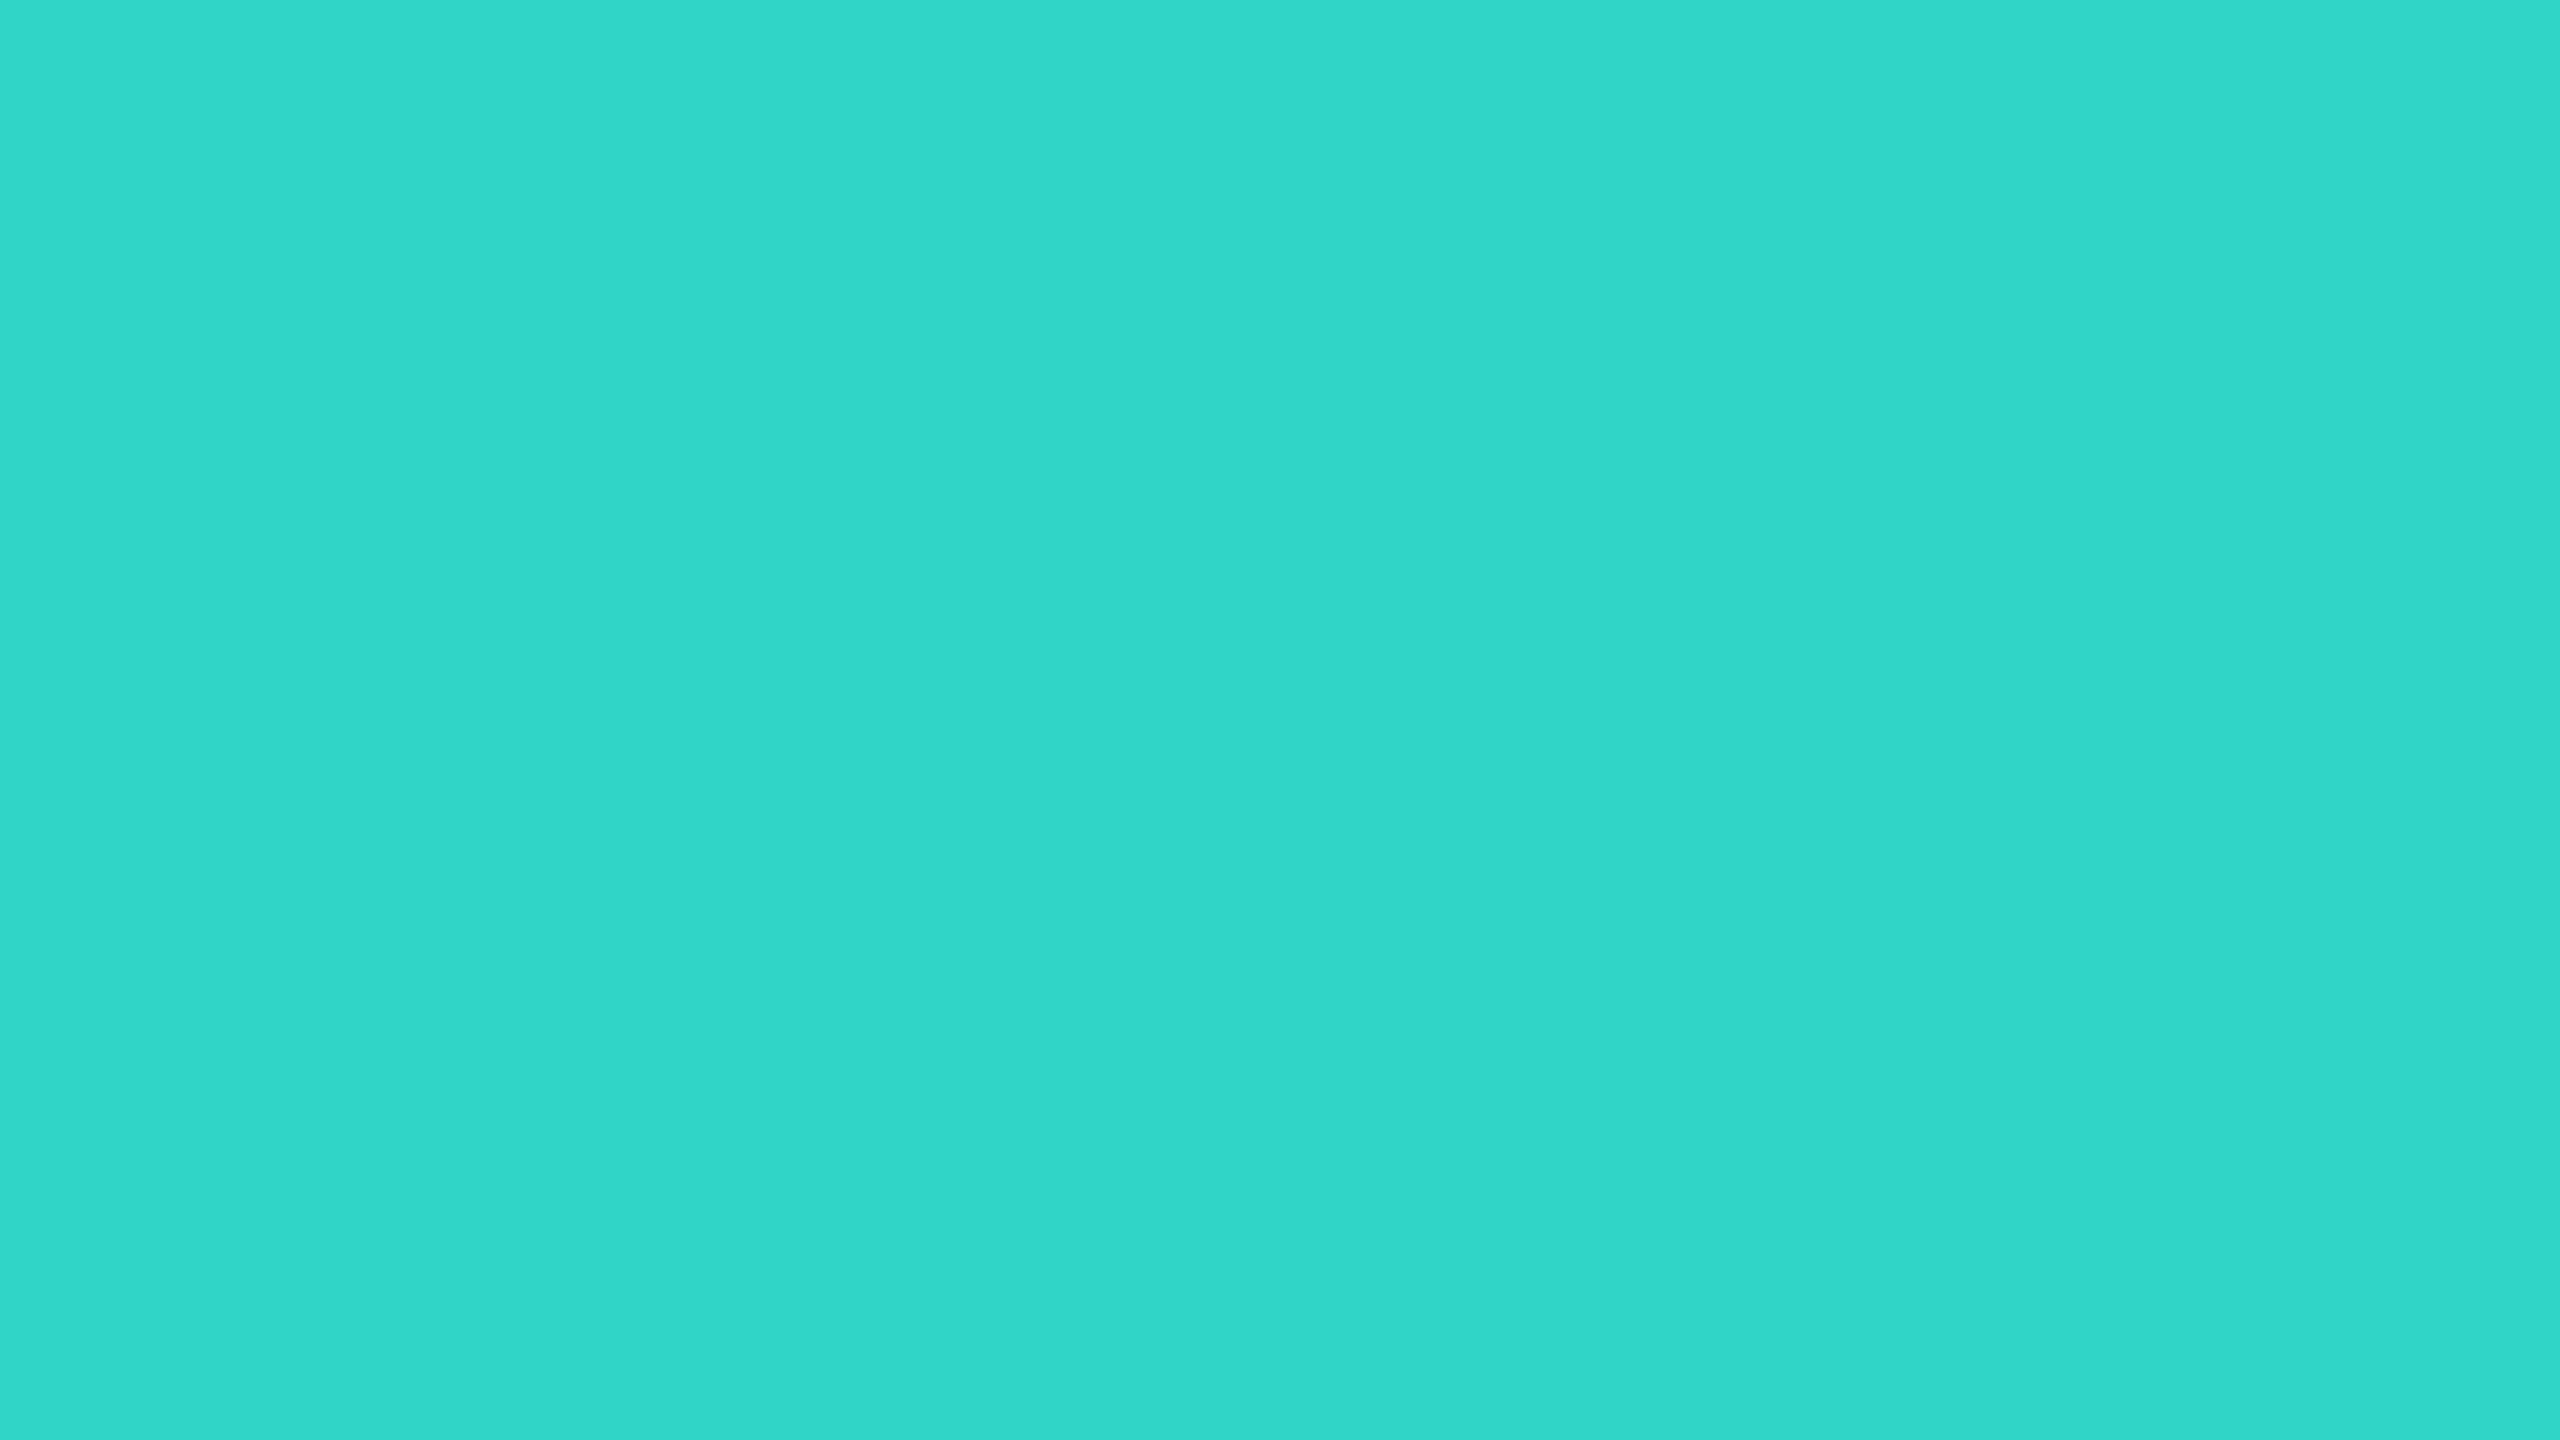 2560x1440 Turquoise Solid Color Background